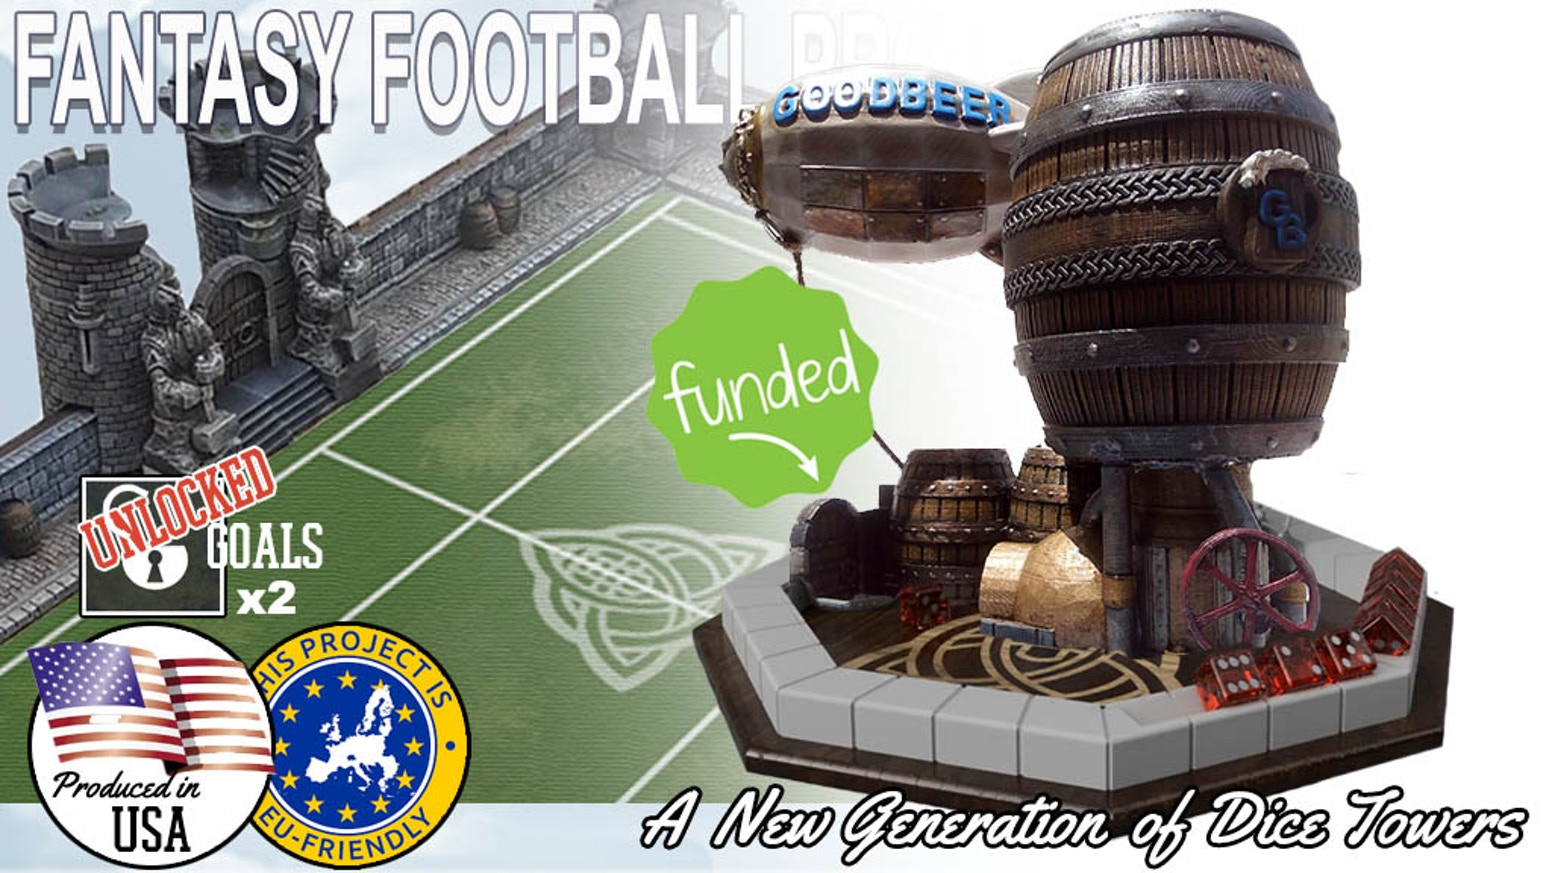 Fantasy Football Modular Resin Stadiums, compatible with the new(2016) and old 'Blood Ball' pitches. Plus, our very own Dice Towers!